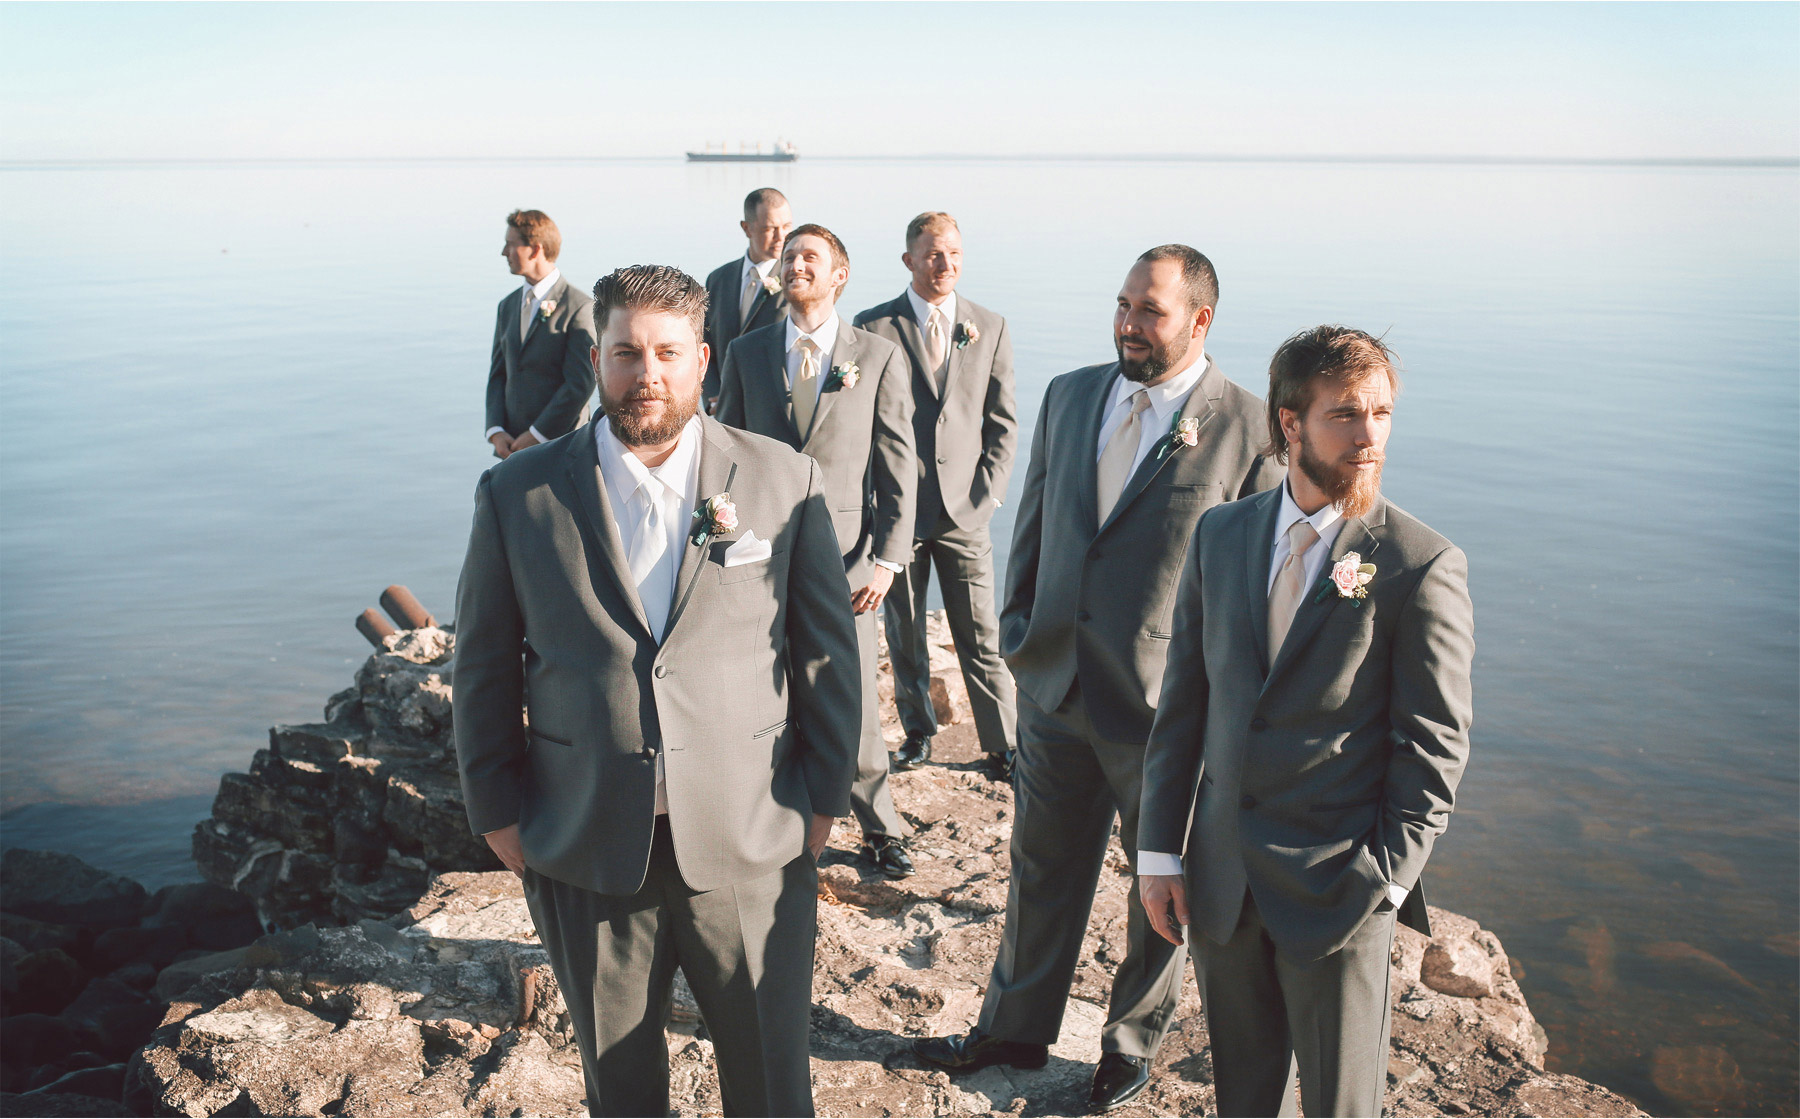 11-Duluth-Minnesota-Wedding-Photographer-by-Andrew-Vick-Photography-Fall-Autumn-Lake-Superior-Groom-Groomsmen-Vintage-Molly-and-Carson.jpg